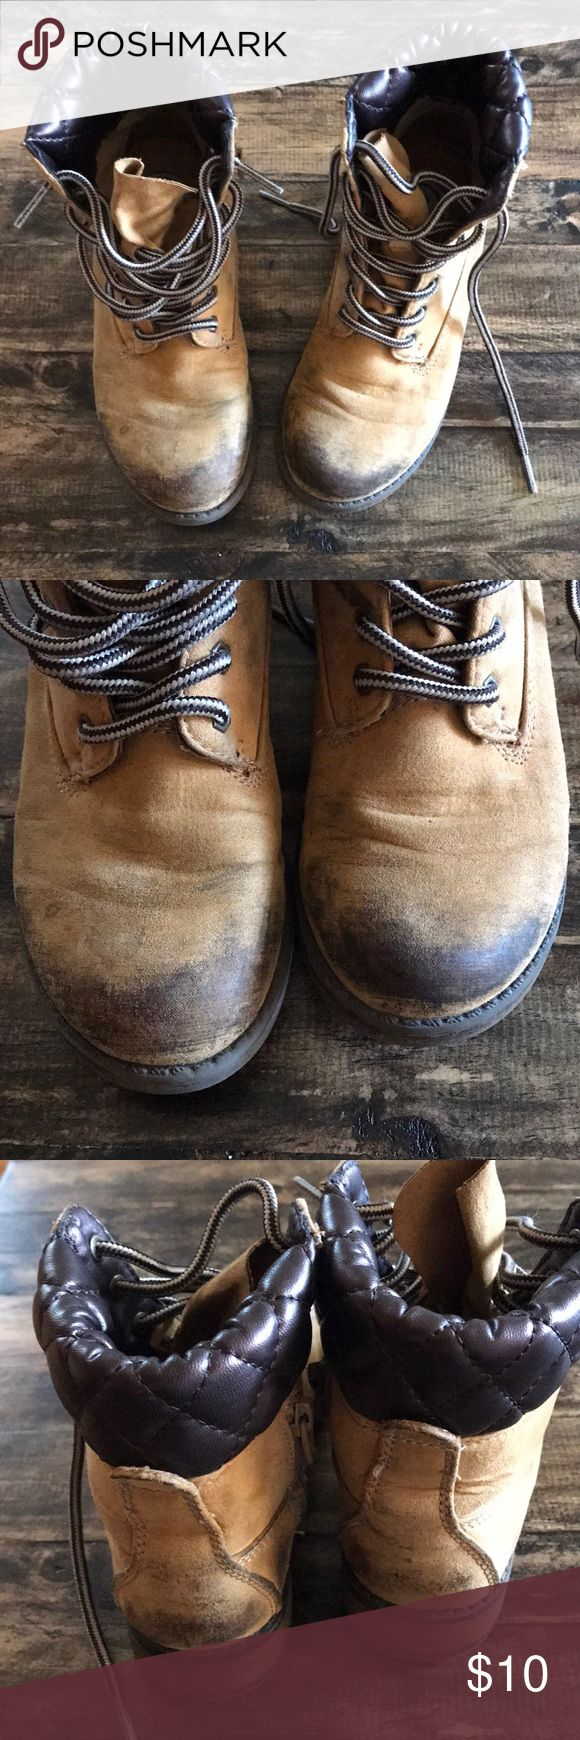 Stevie's by Steve Madden boots Stevie's by Steve Madden for Target Boots, in excellent condition Stevies Shoes Boots